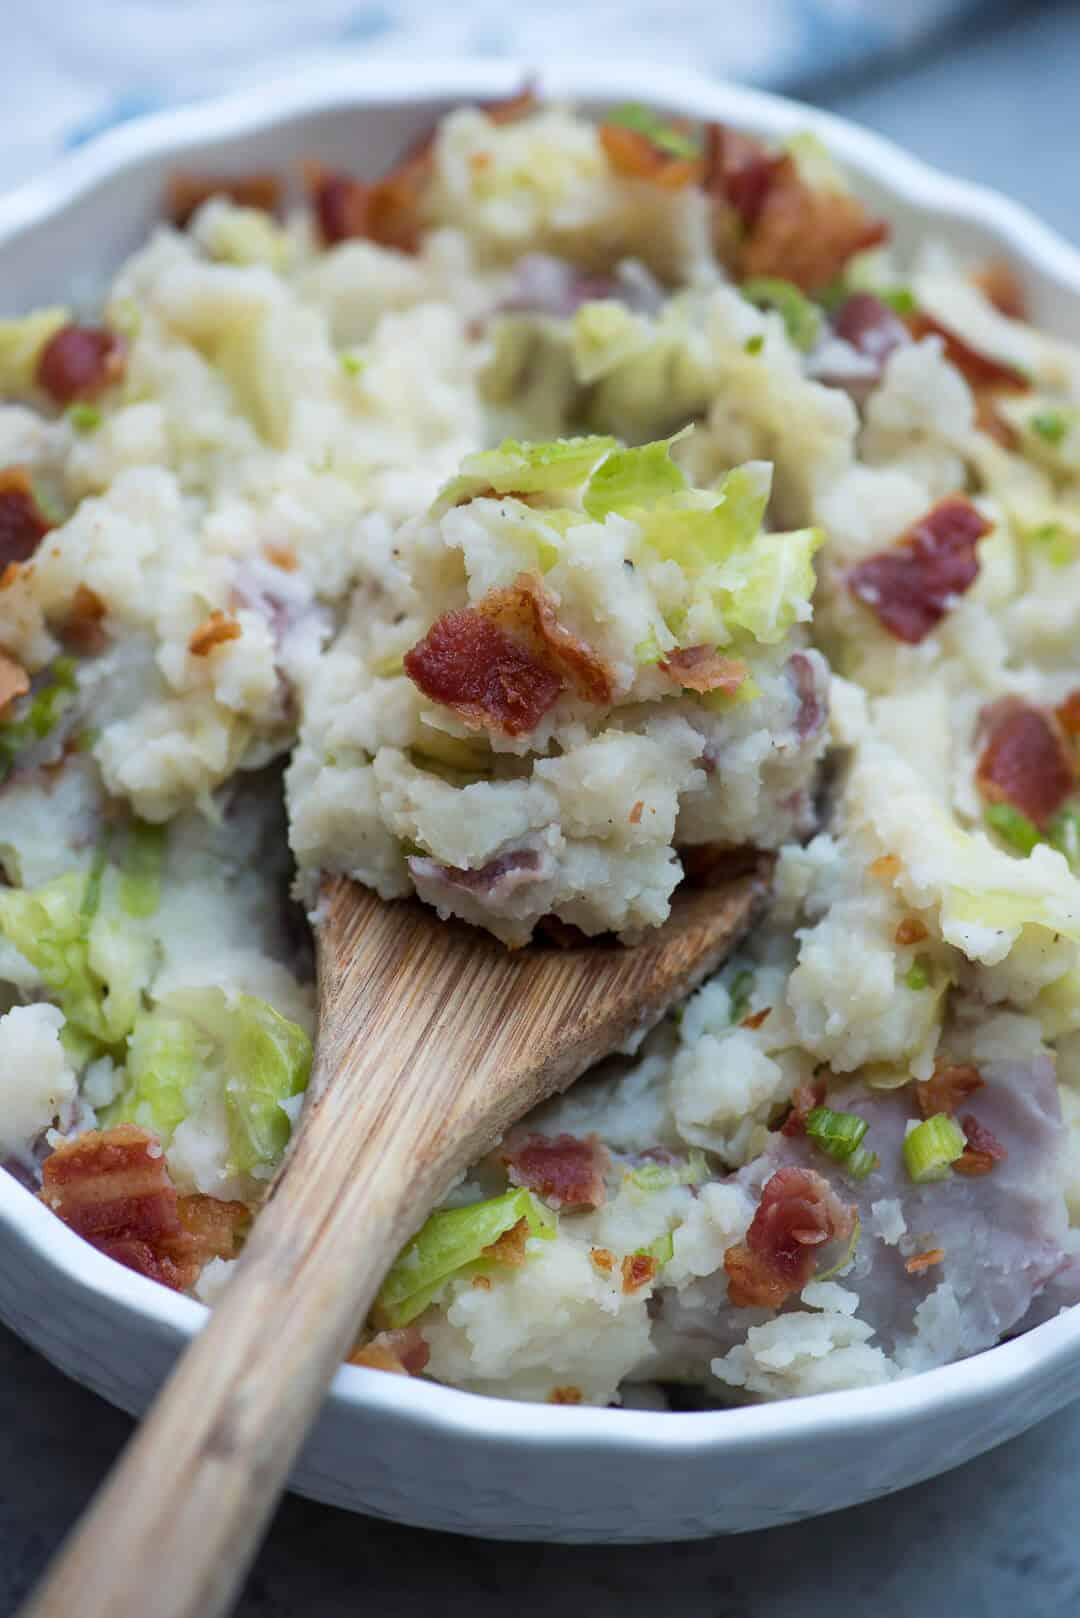 Irish Colcannon Potatoes in a white bowl with a wooden spoon.